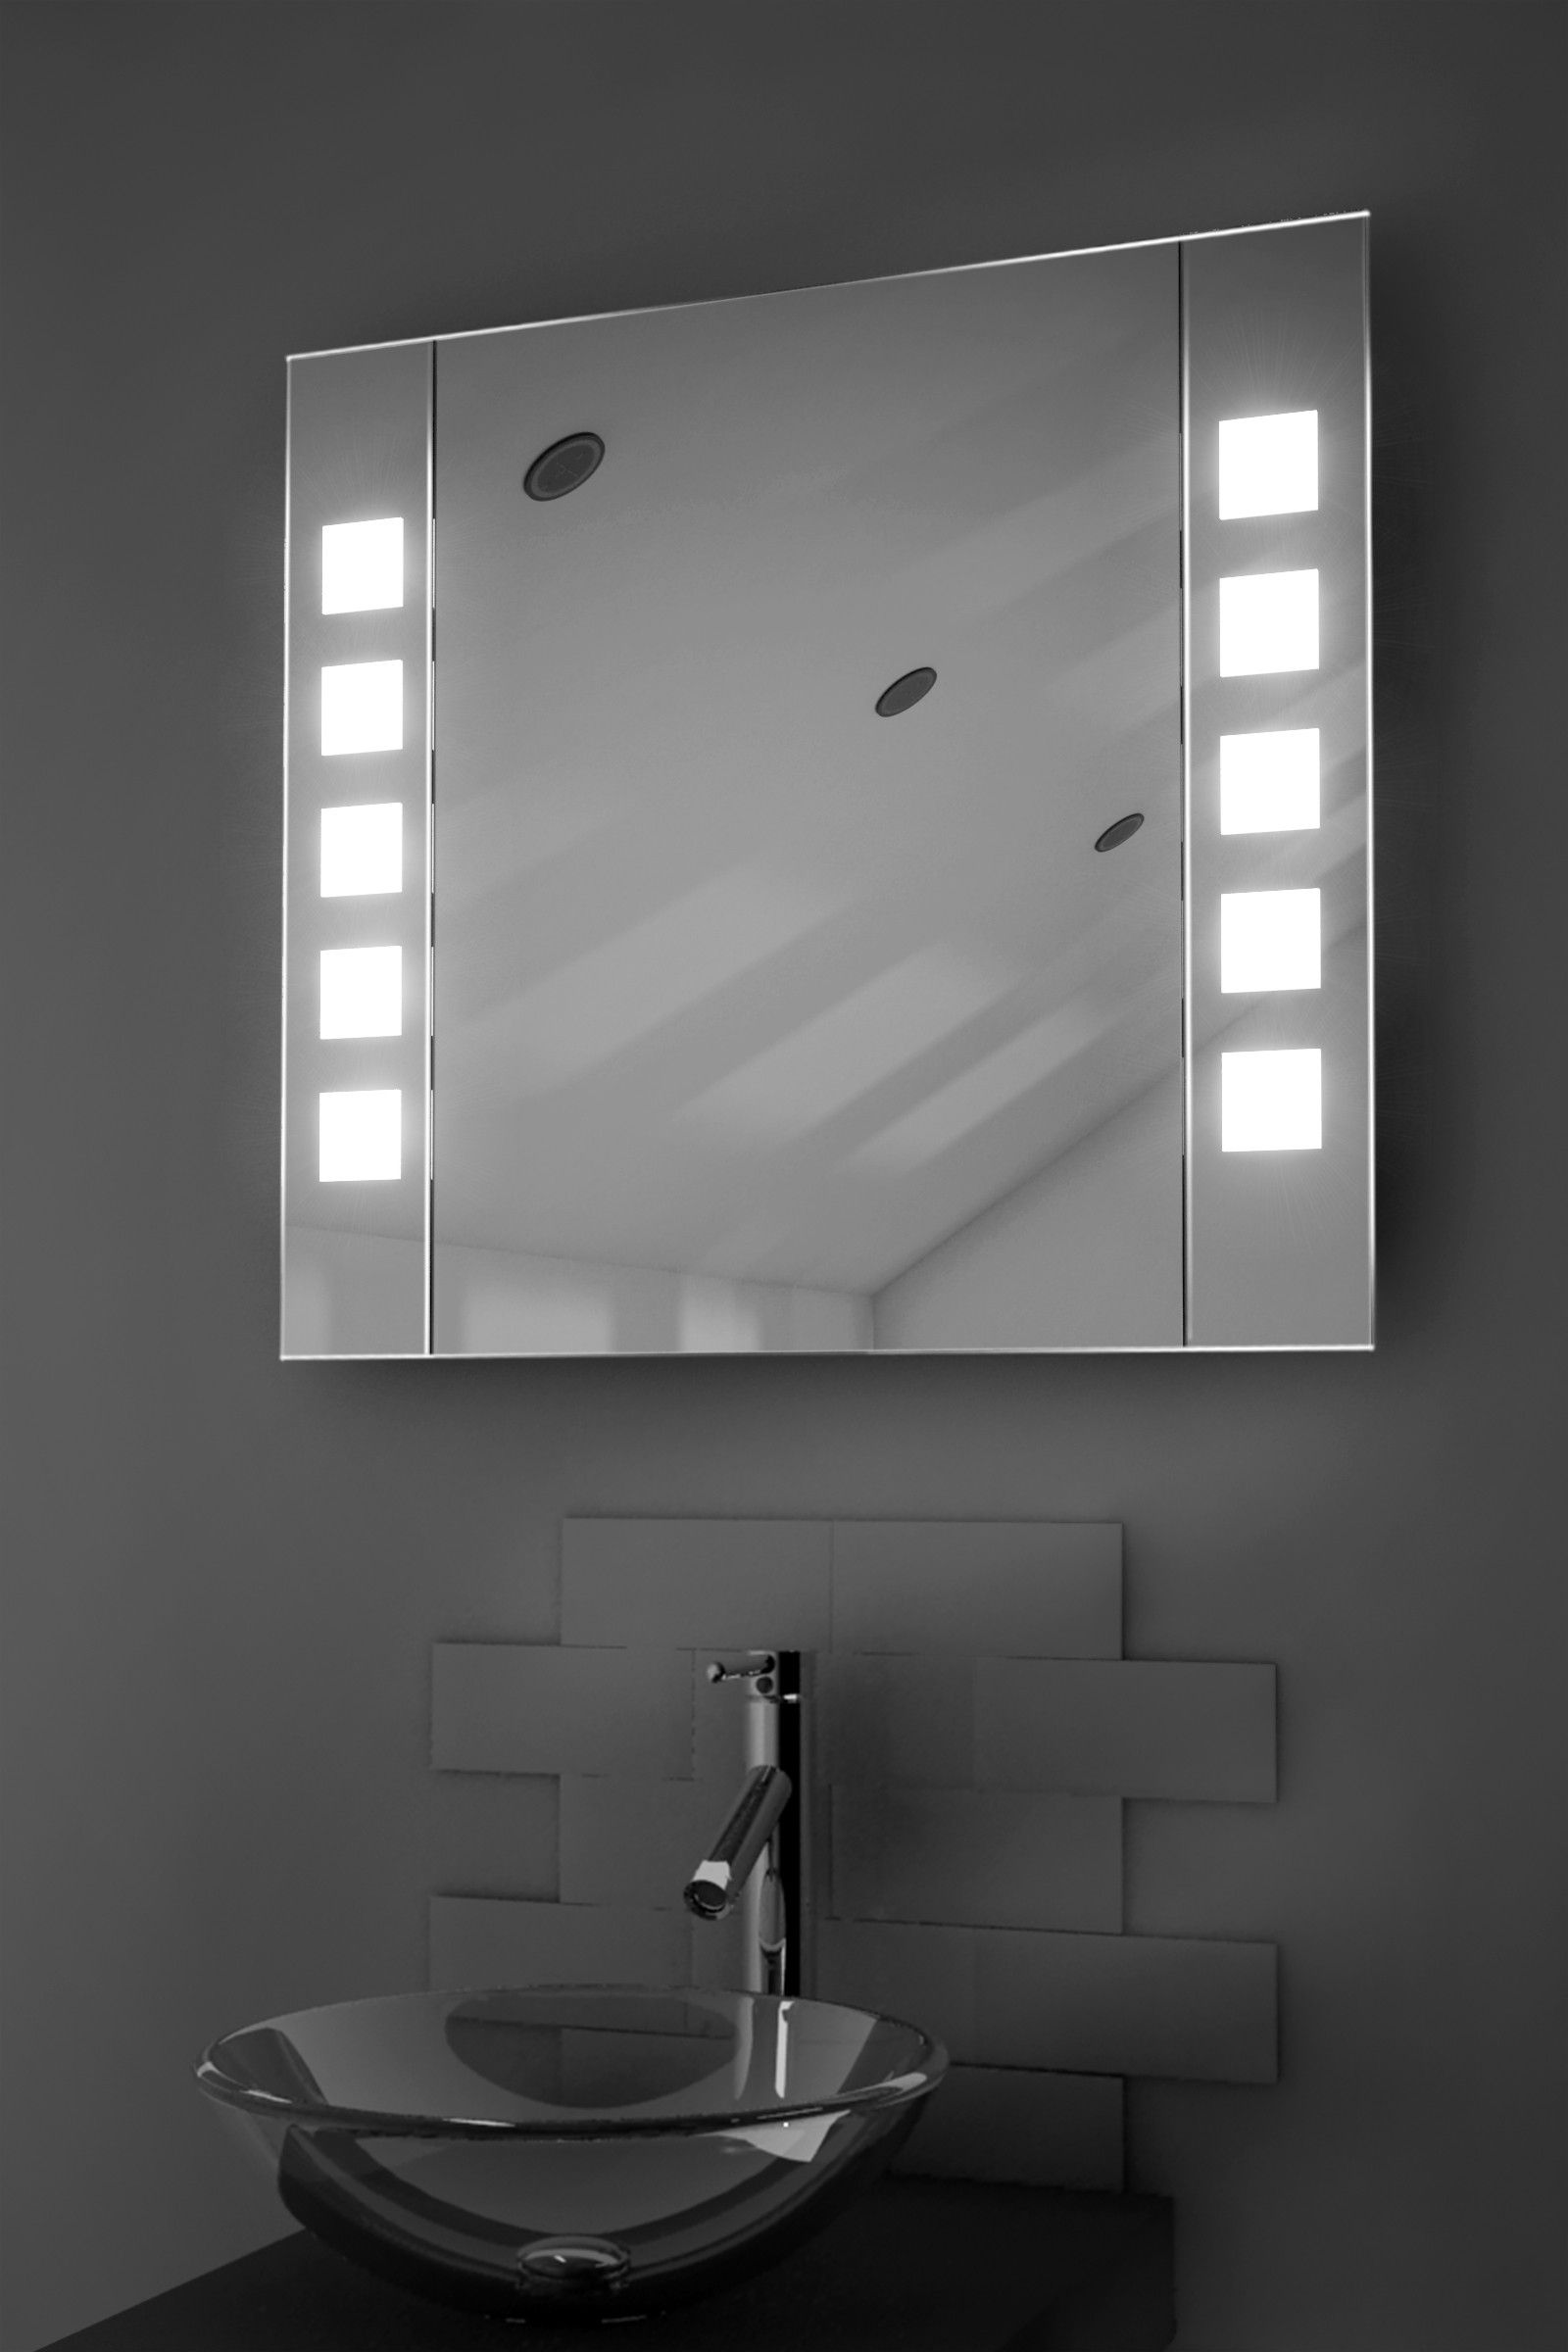 Demister bathroom mirrors - Order Your Noble Demist Cabinet Mirrors From Illuminated Mirrors Uk And Enjoy Free Next Day Delivery And A Year Warranty On Our Entire Range